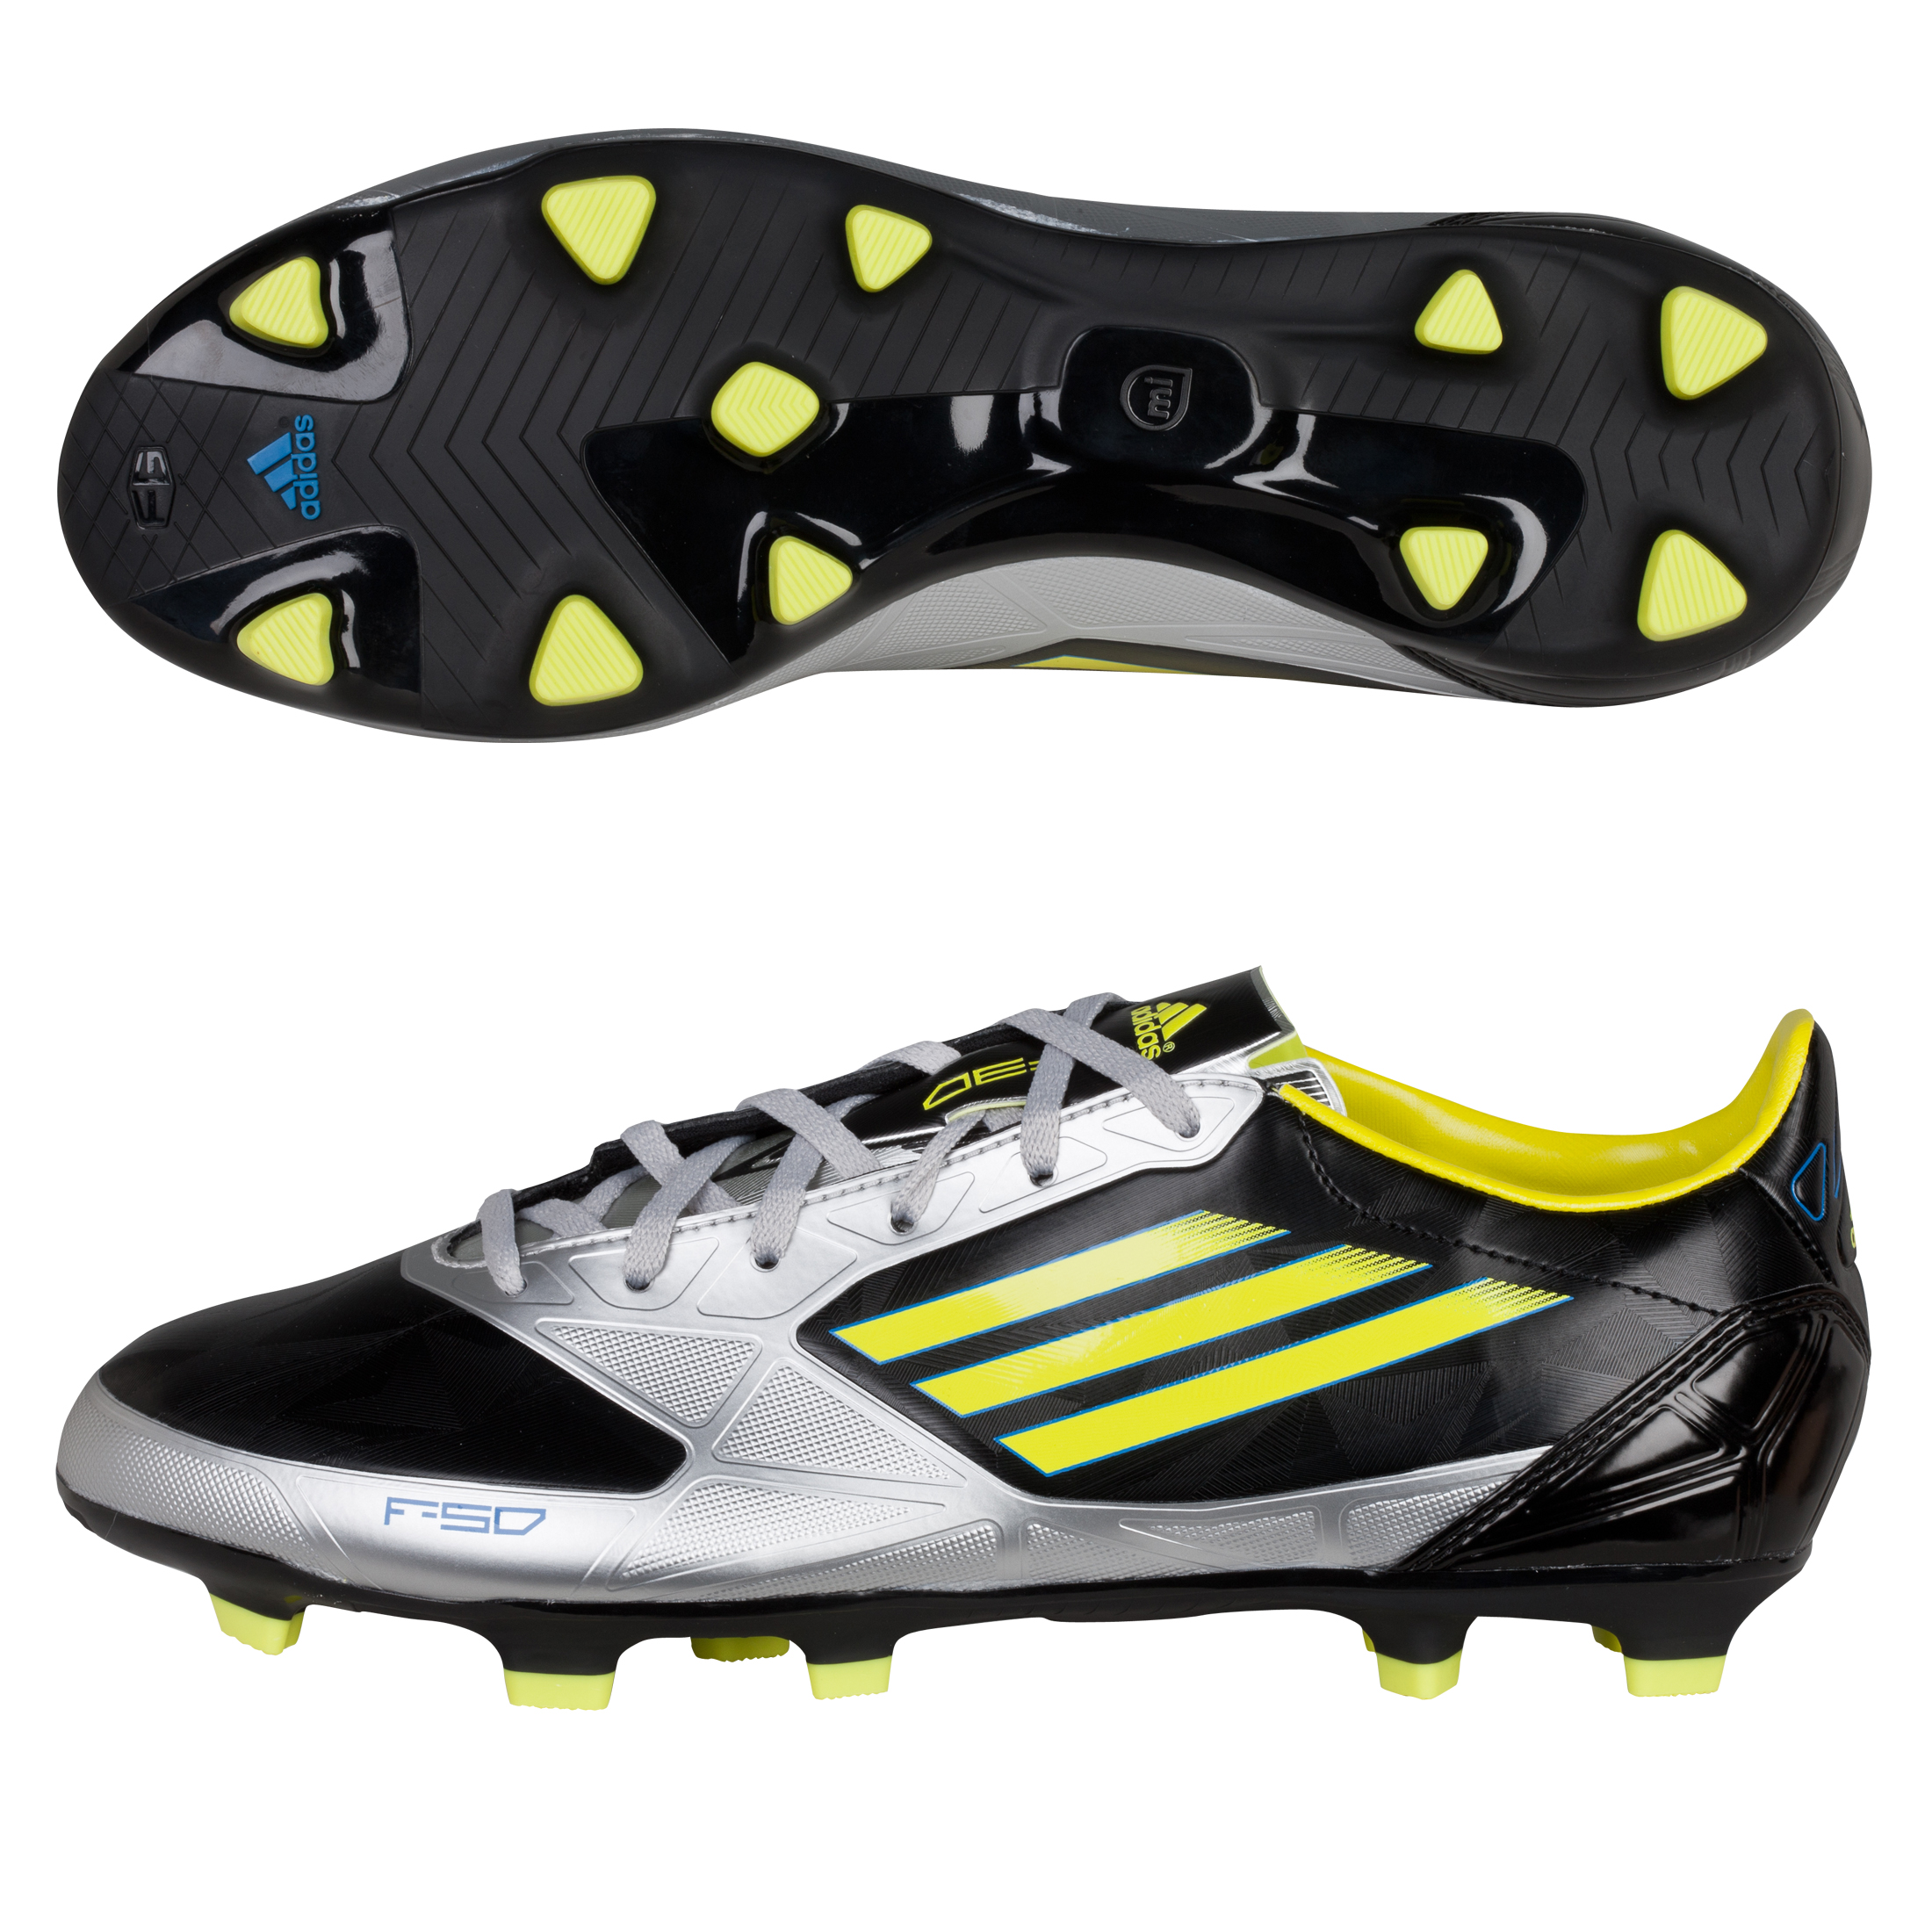 Adidas F30 TRX Firm Ground Football Boots - Black/Lab Lime/Metallic Silver